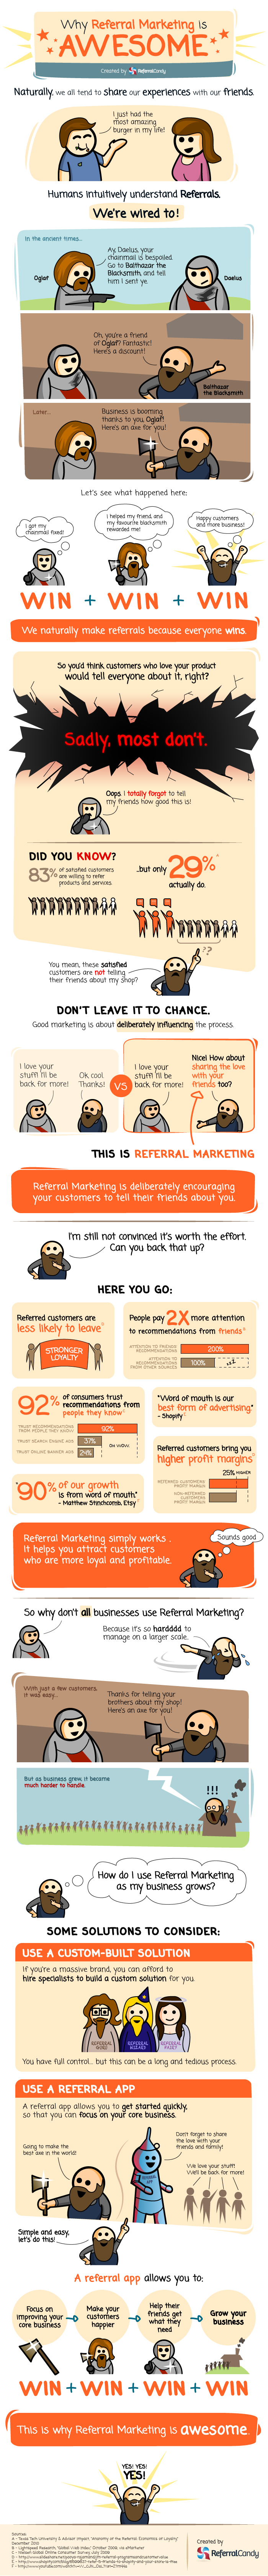 Referral Marketing Strategy Why Referral Marketing Is Awesome By Referralcandy